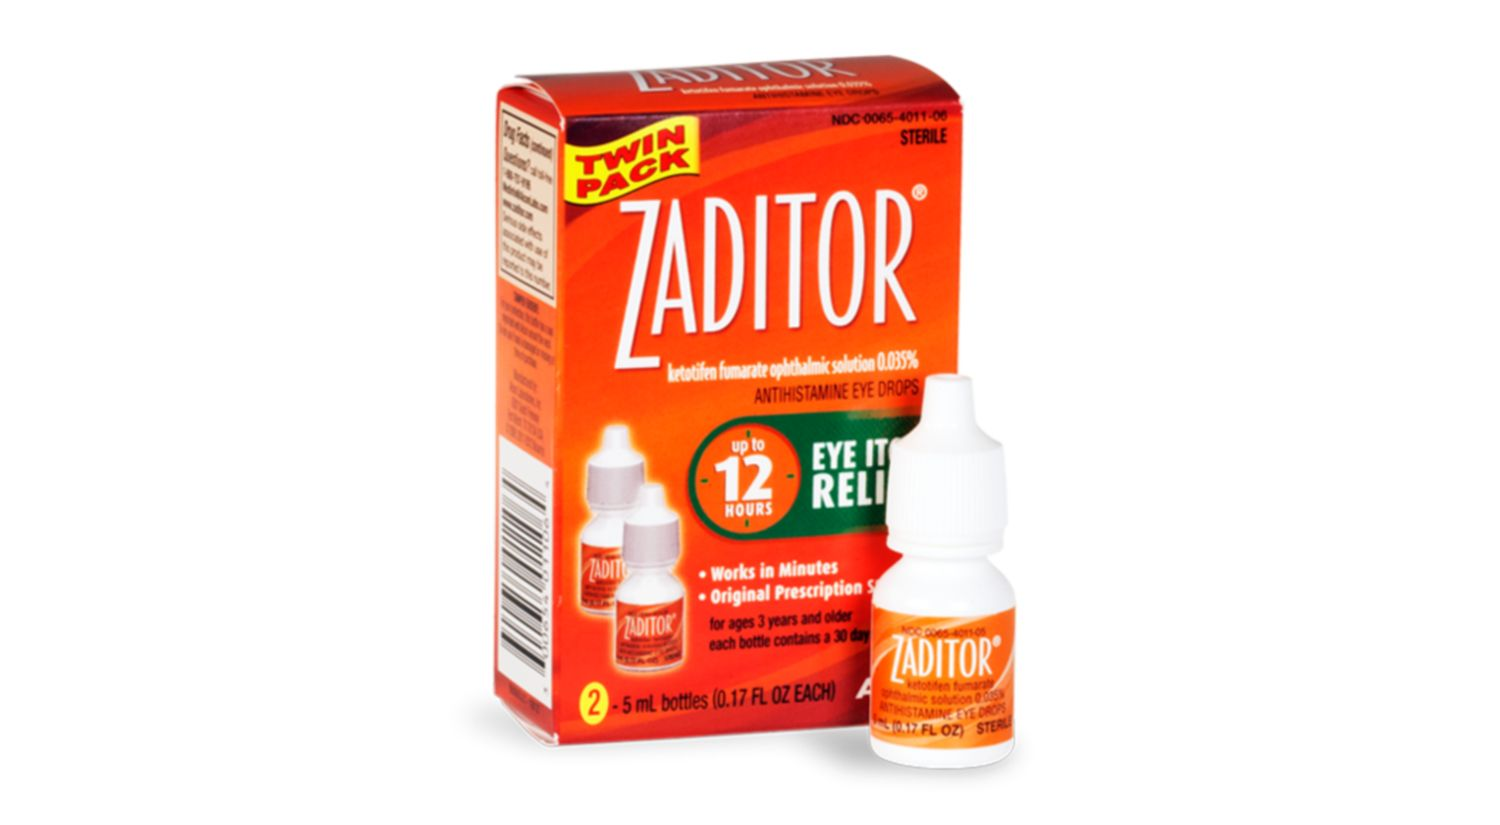 ZADITOR® Eye Drops 2 pack